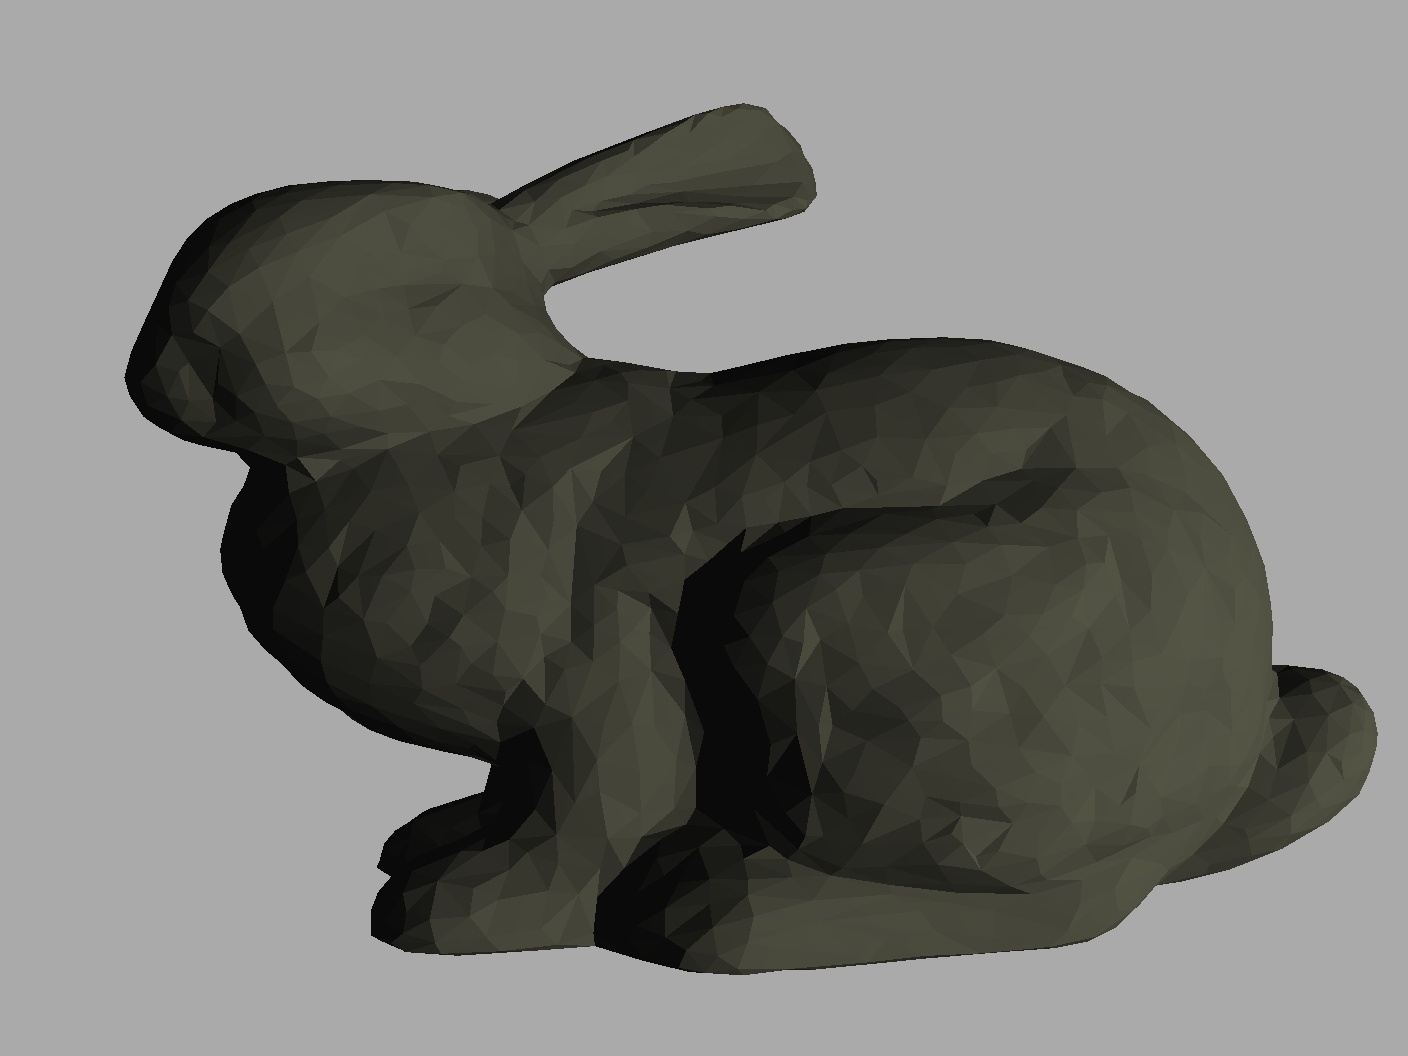 Output of the headless renderer. The stanford rabbit.